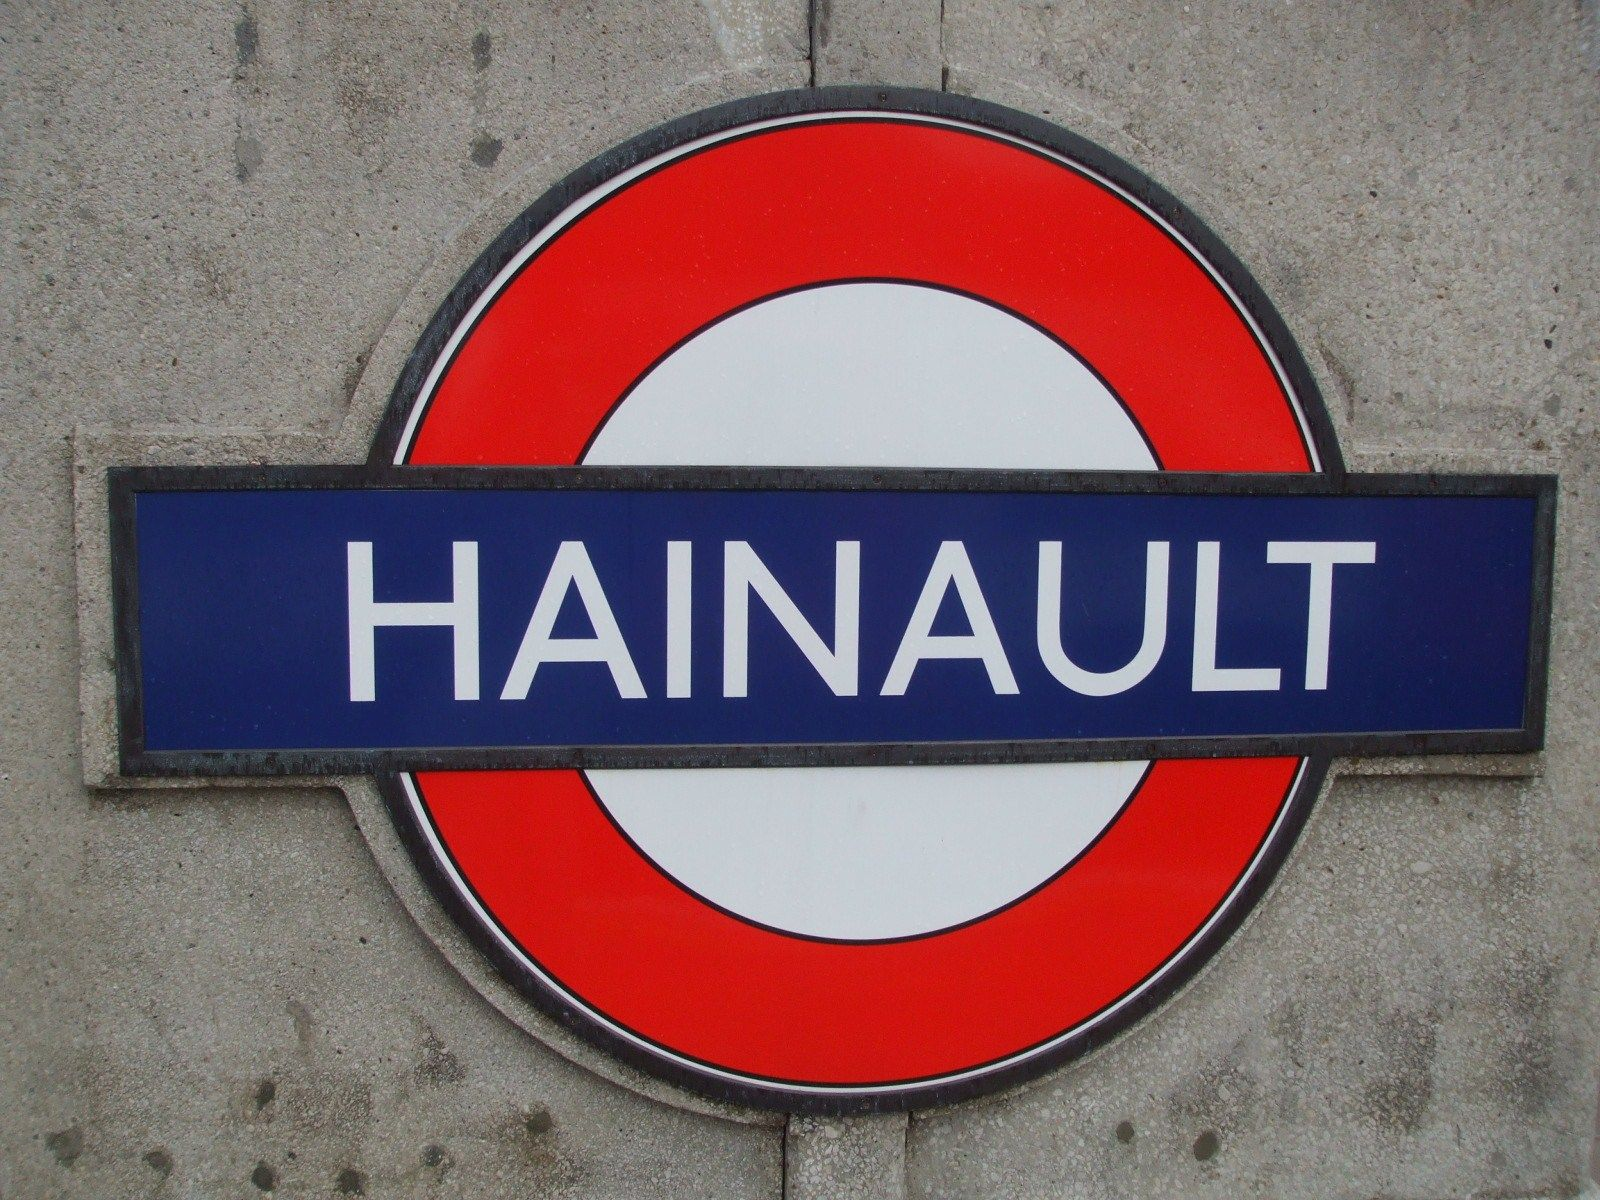 Hainault London Underground Station In Hainault Greater London